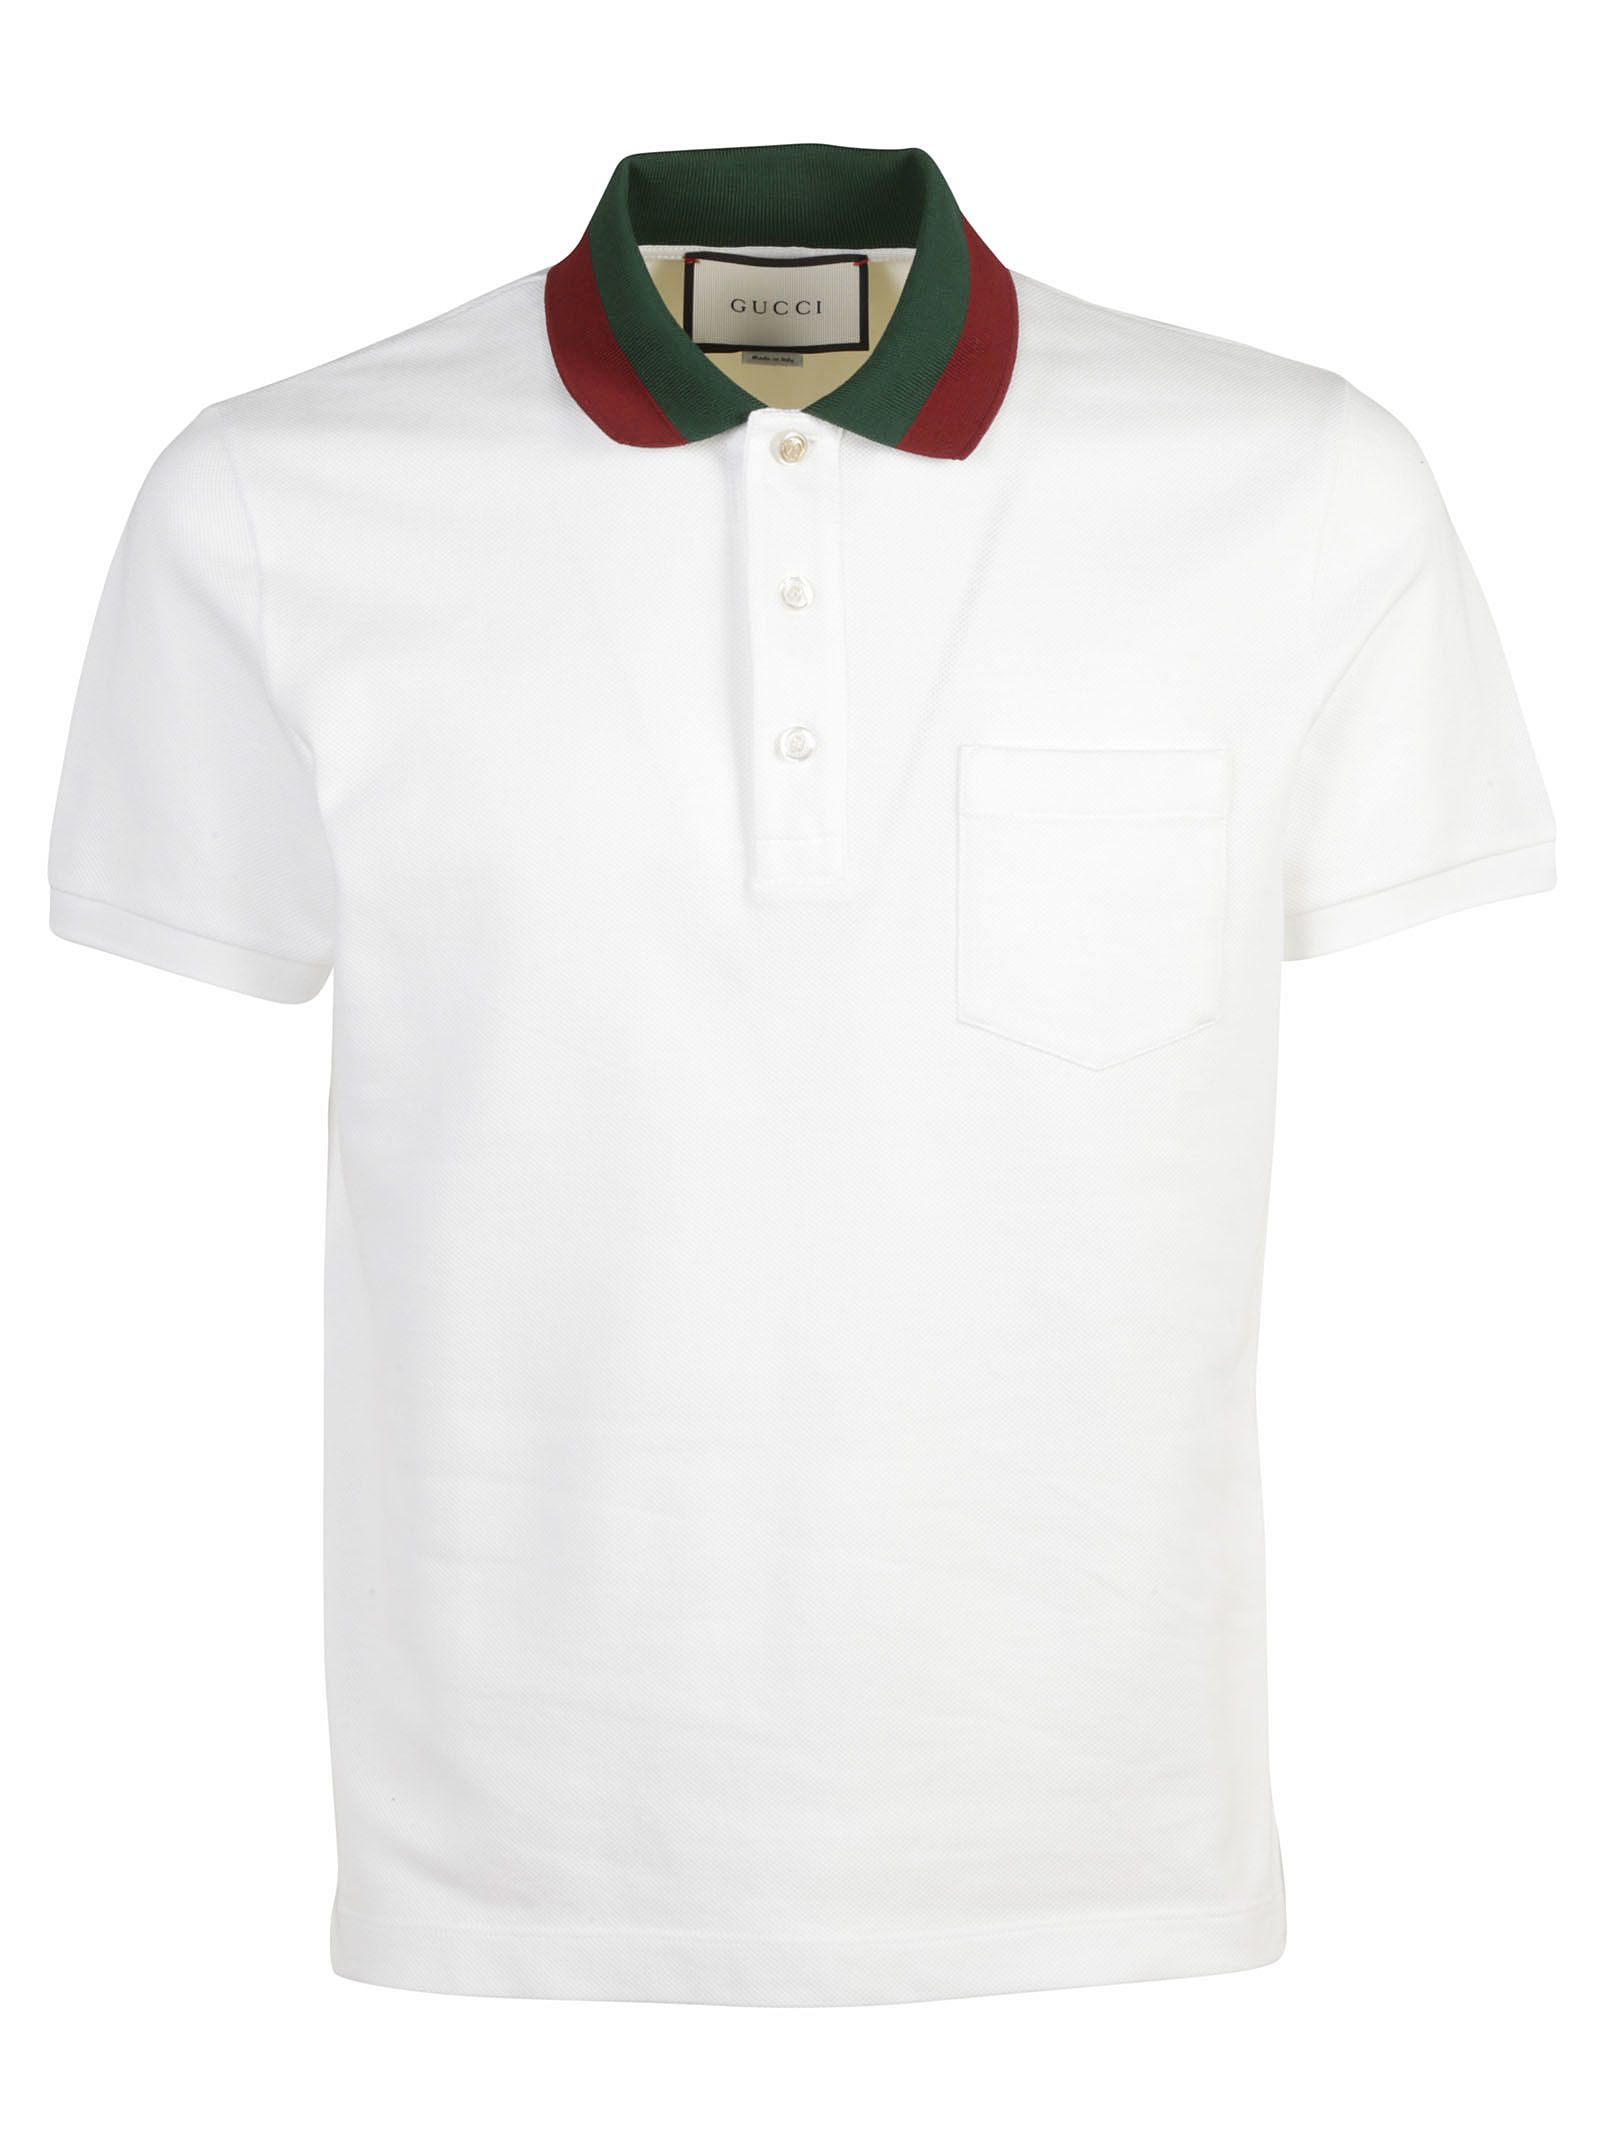 gucci polo shirts white images. Black Bedroom Furniture Sets. Home Design Ideas